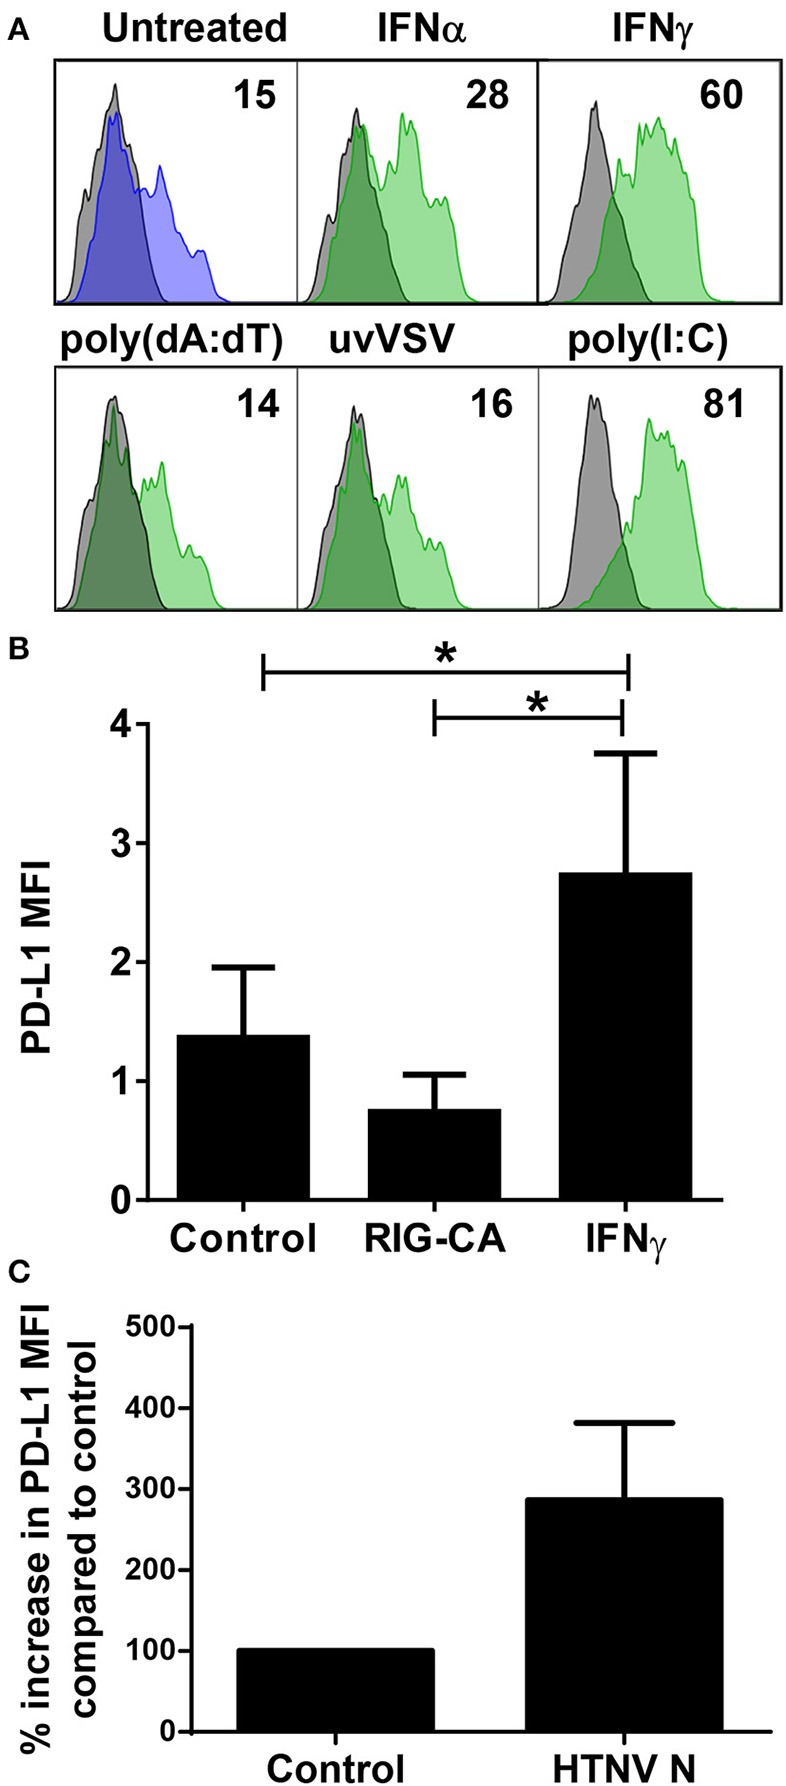 Control of PD-L1 expression by inflammatory stimuli. (A) Immature DCs were exposed to the following inflammatory stimuli before staining for PD-L1: type I <t>IFN</t> (IFN-α at 1,000 U/ml), type II IFN <t>(IFN-γ</t> at 1,000 U/ml), poly(dA:dT), UV-inactivated VSV or poly(I:C) for 24 h. The results shown are representative of three independent experiments using three different donors. (B) Huh7.5 cells (control), Huh7.5 cells permanently expressing a constitutively active form of RIG-I (RIG-CA) or Huh7.5 cells stimulated with IFN-γ at 1,000 U/ml for 24 h were stained for PD-L1 and analyzed by flow cytometry. Results are derived from three independent experiments, error bars represent the mean ± SEM ( * p